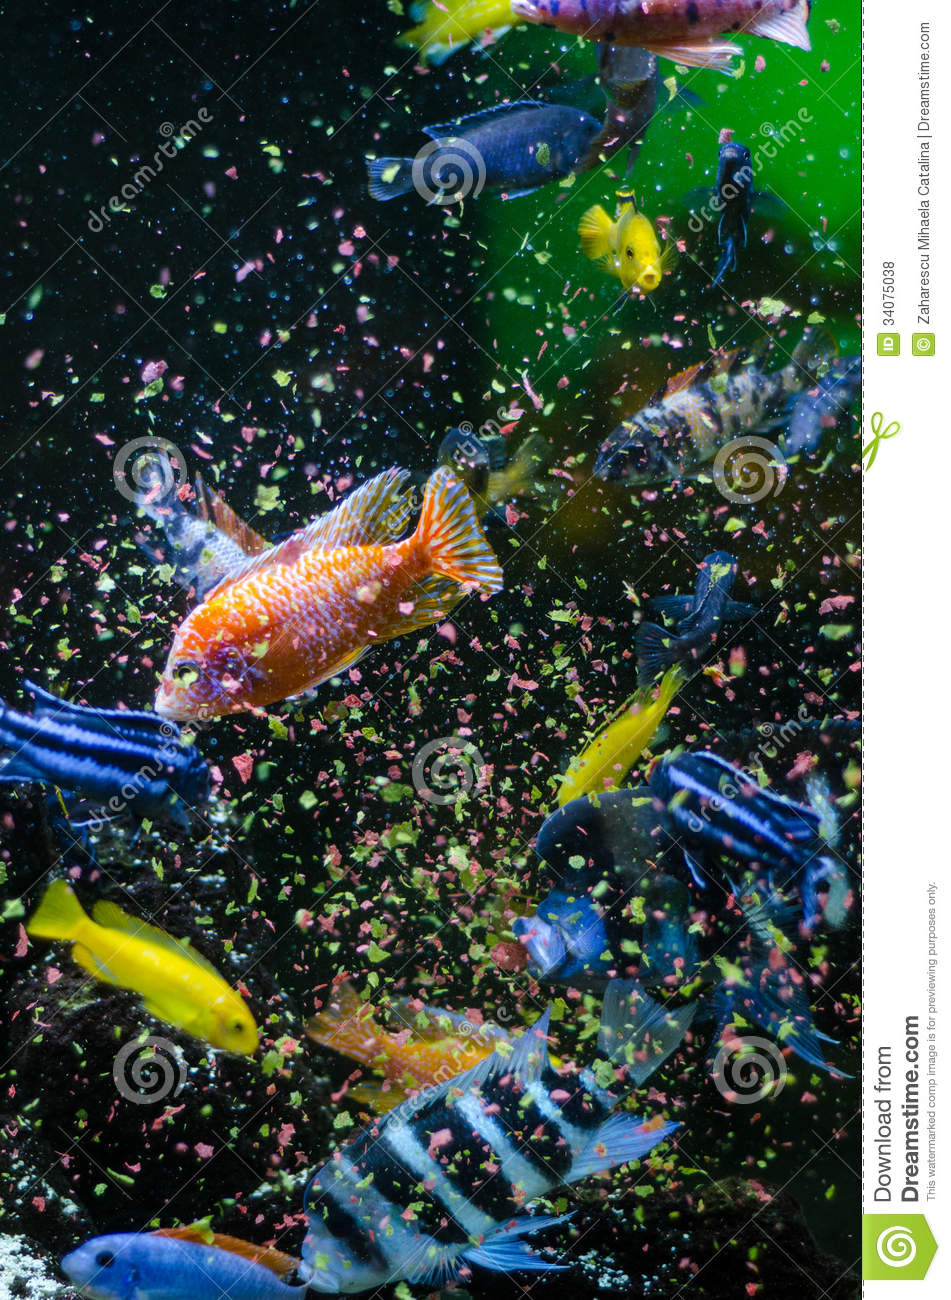 Fish eating flakes food stock photo image of tank water for Dreaming of eating fish